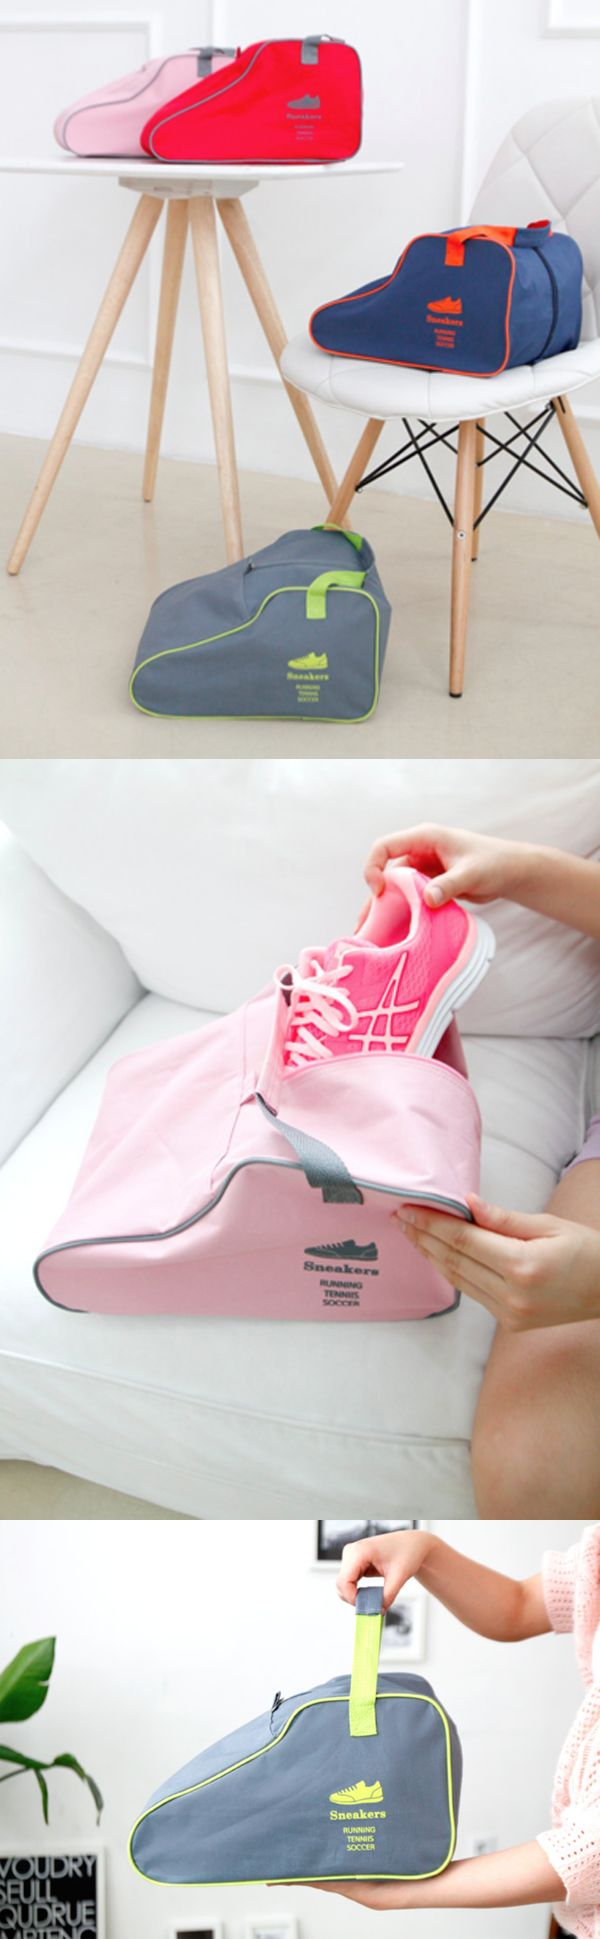 Need to carry your shoes for your next travel? Or need to organize and keep shoes that are not worn often? The Sneakers Bag definitely can help you with that! Store or Carry your shoes conveniently with the colorful and well-made Sneaker Bag!